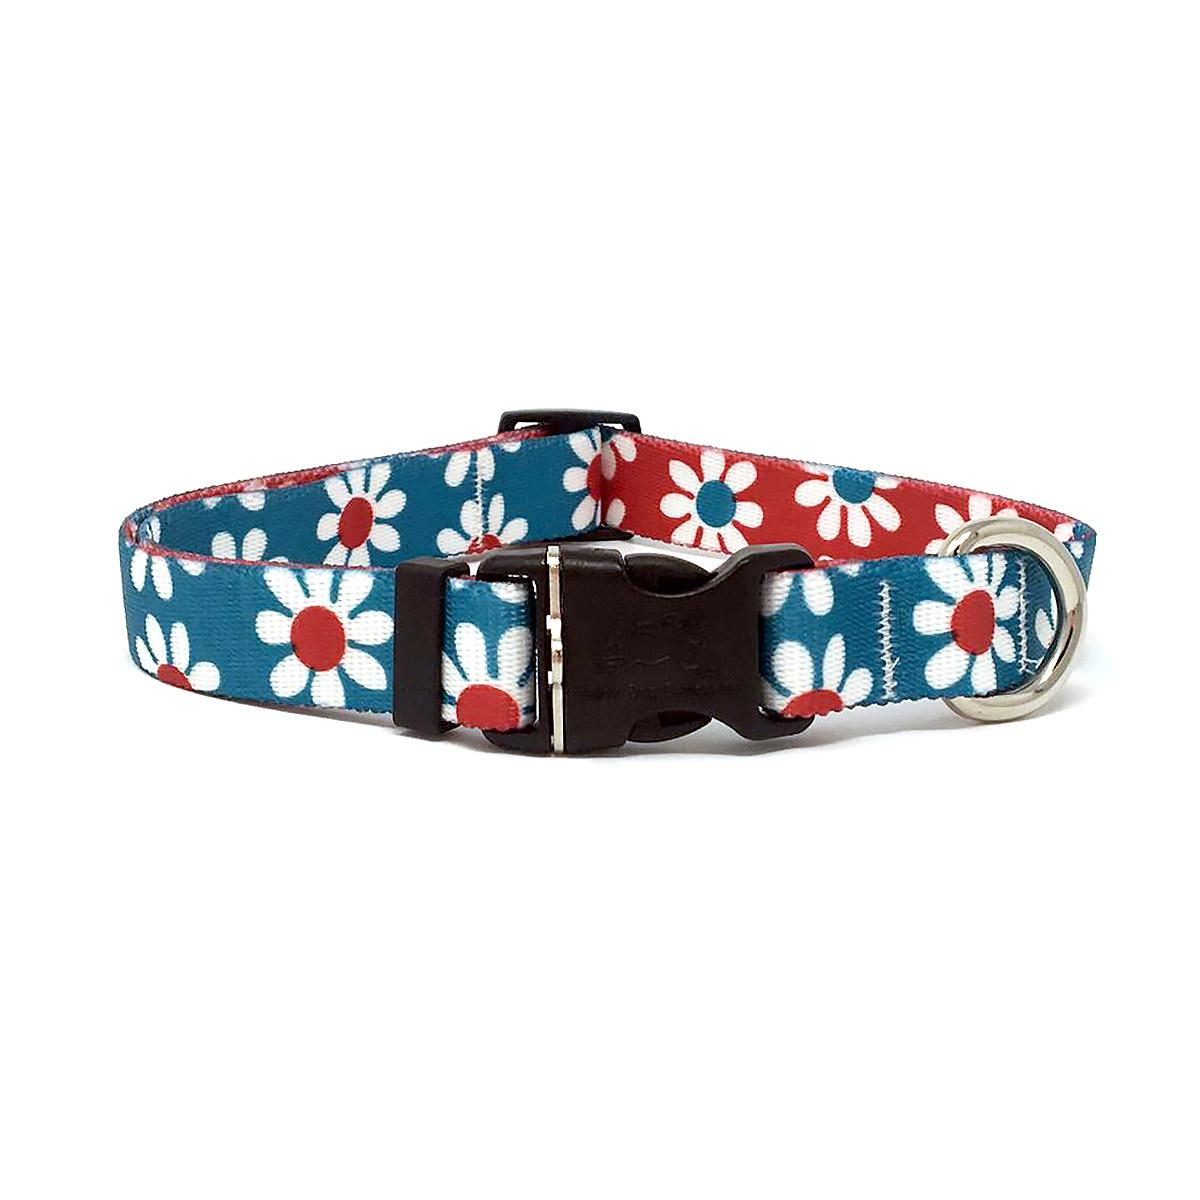 Mix and Match Daisy Dog Collar by Yellow Dog - Teal and Magenta